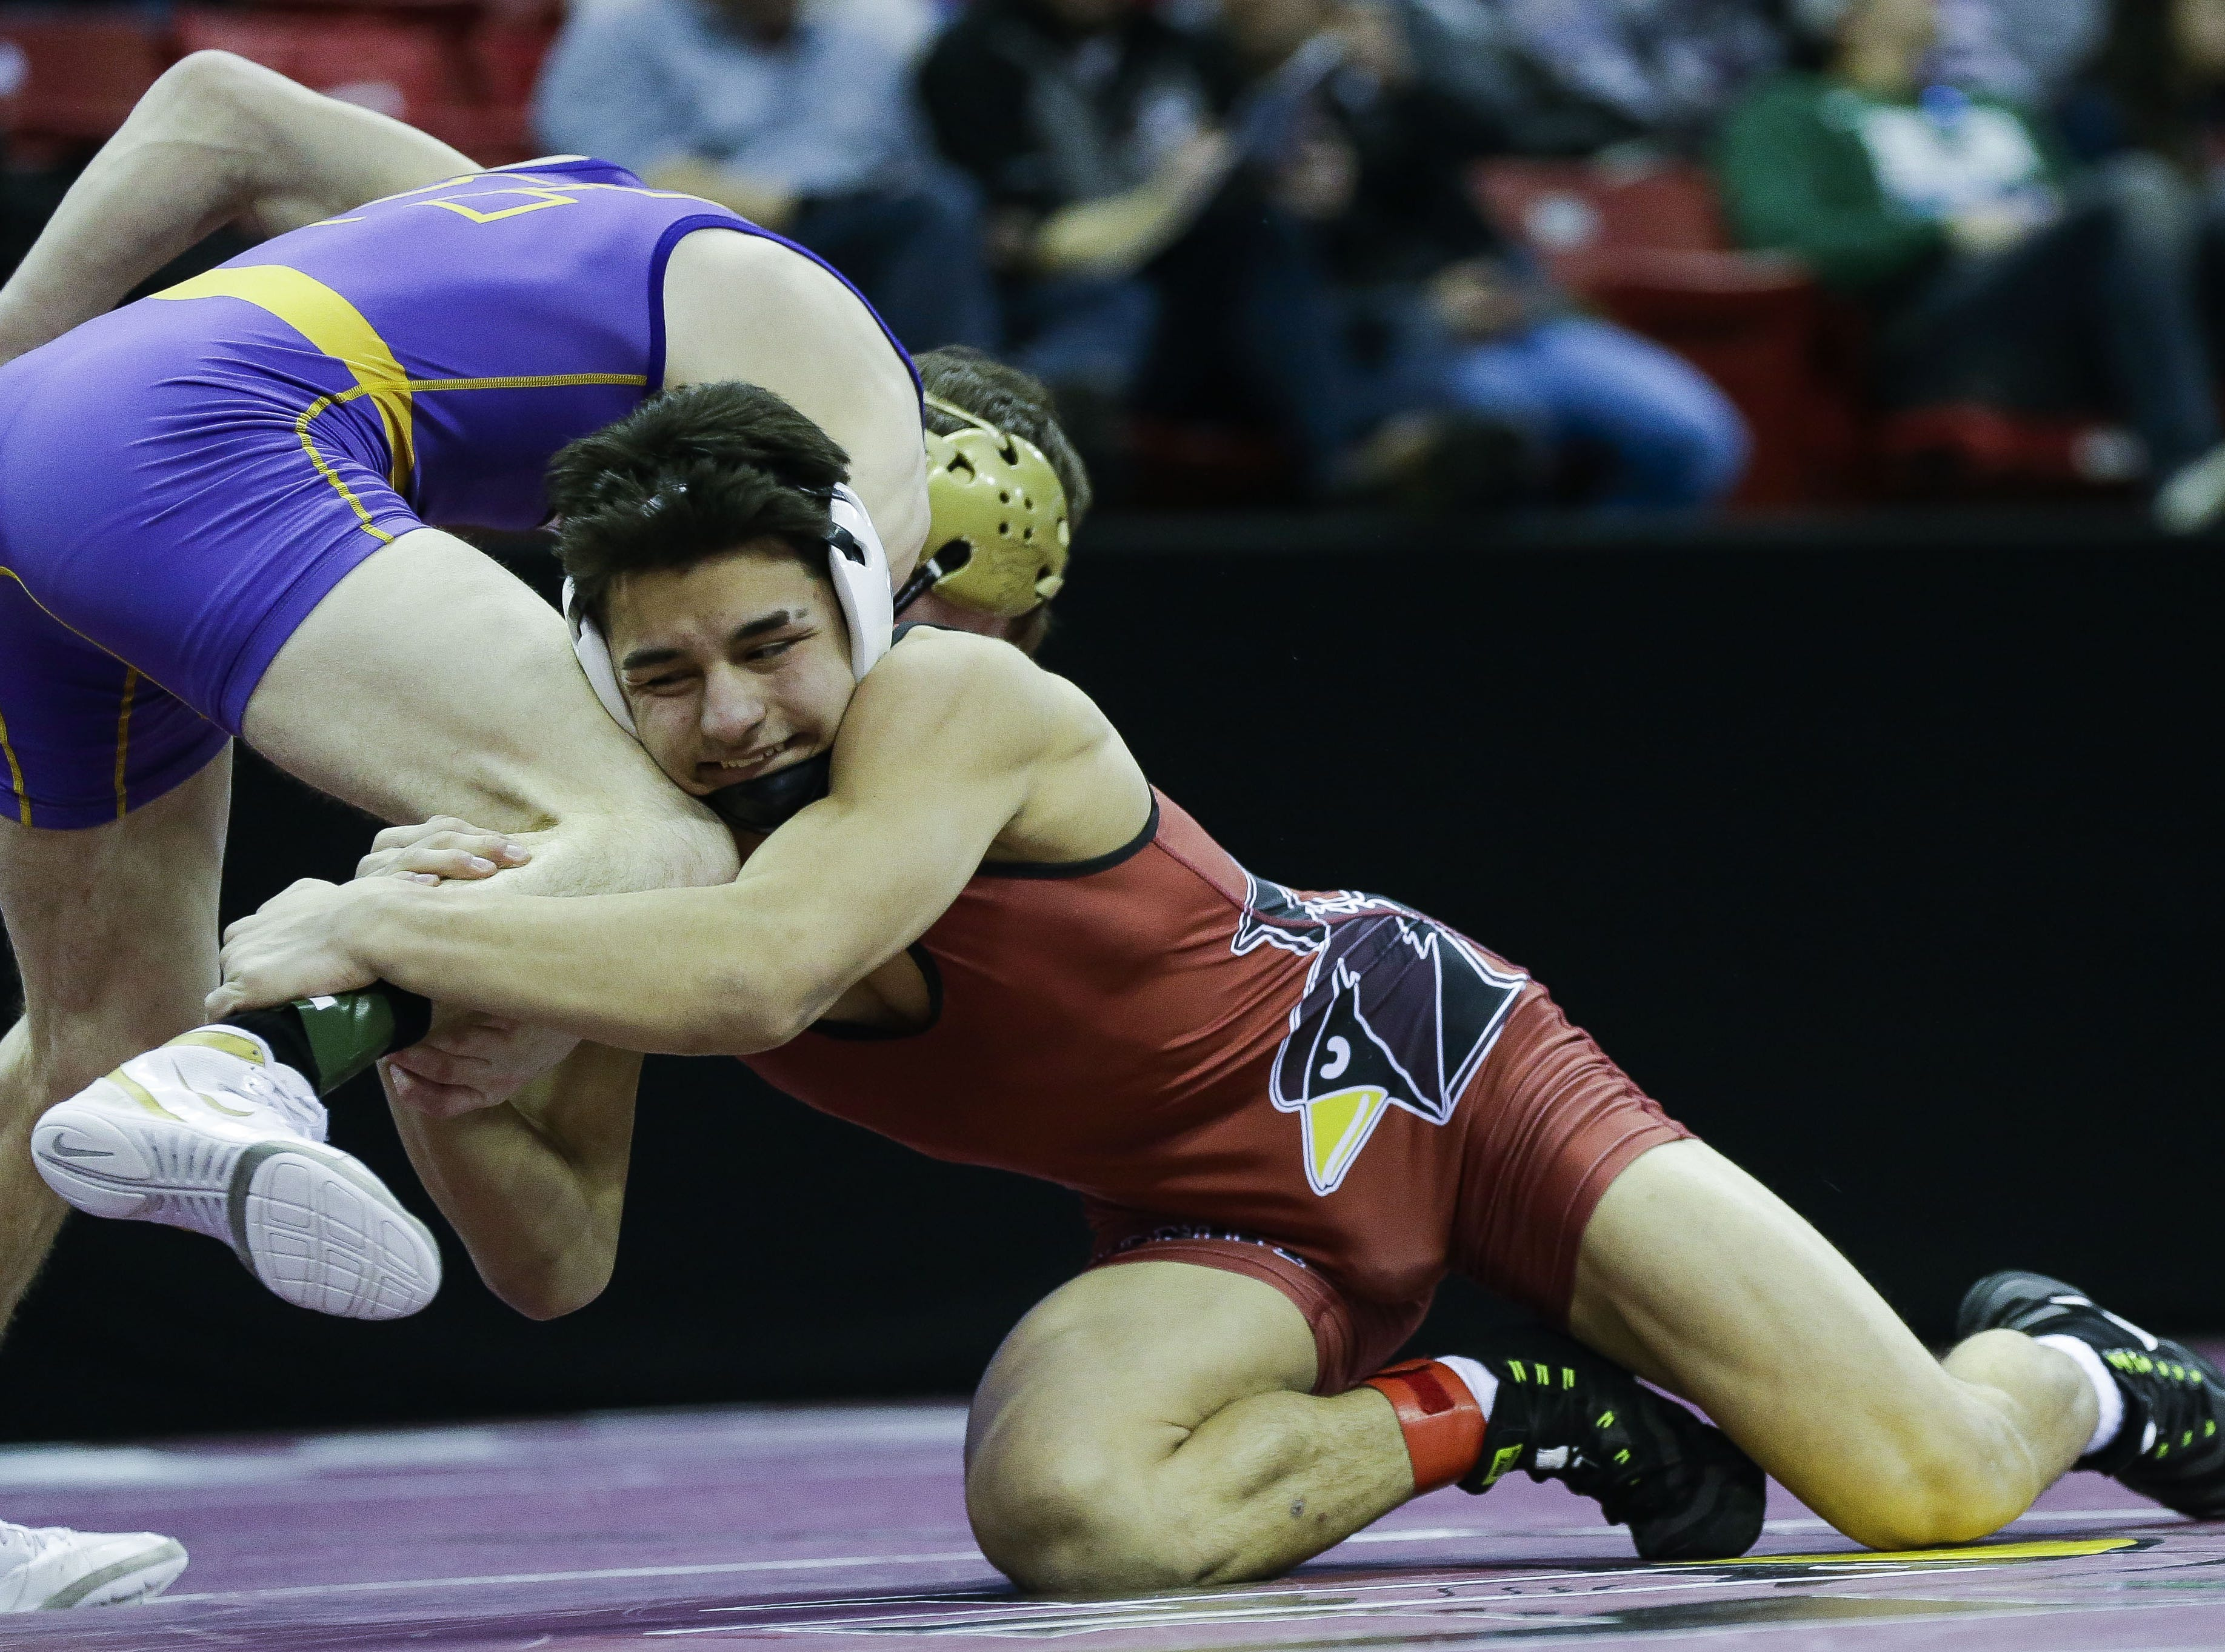 Fond du Lac's Issac Ortegon wrestles against Elkhorn Area/Faith Christian's Daniel Stilling in a Division 1 138-pound preliminary match during the WIAA state wrestling tournament on Thursday, February 21, 2019, at the Kohl Center in Madison, Wis. Tork Mason/USA TODAY NETWORK-Wisconsin